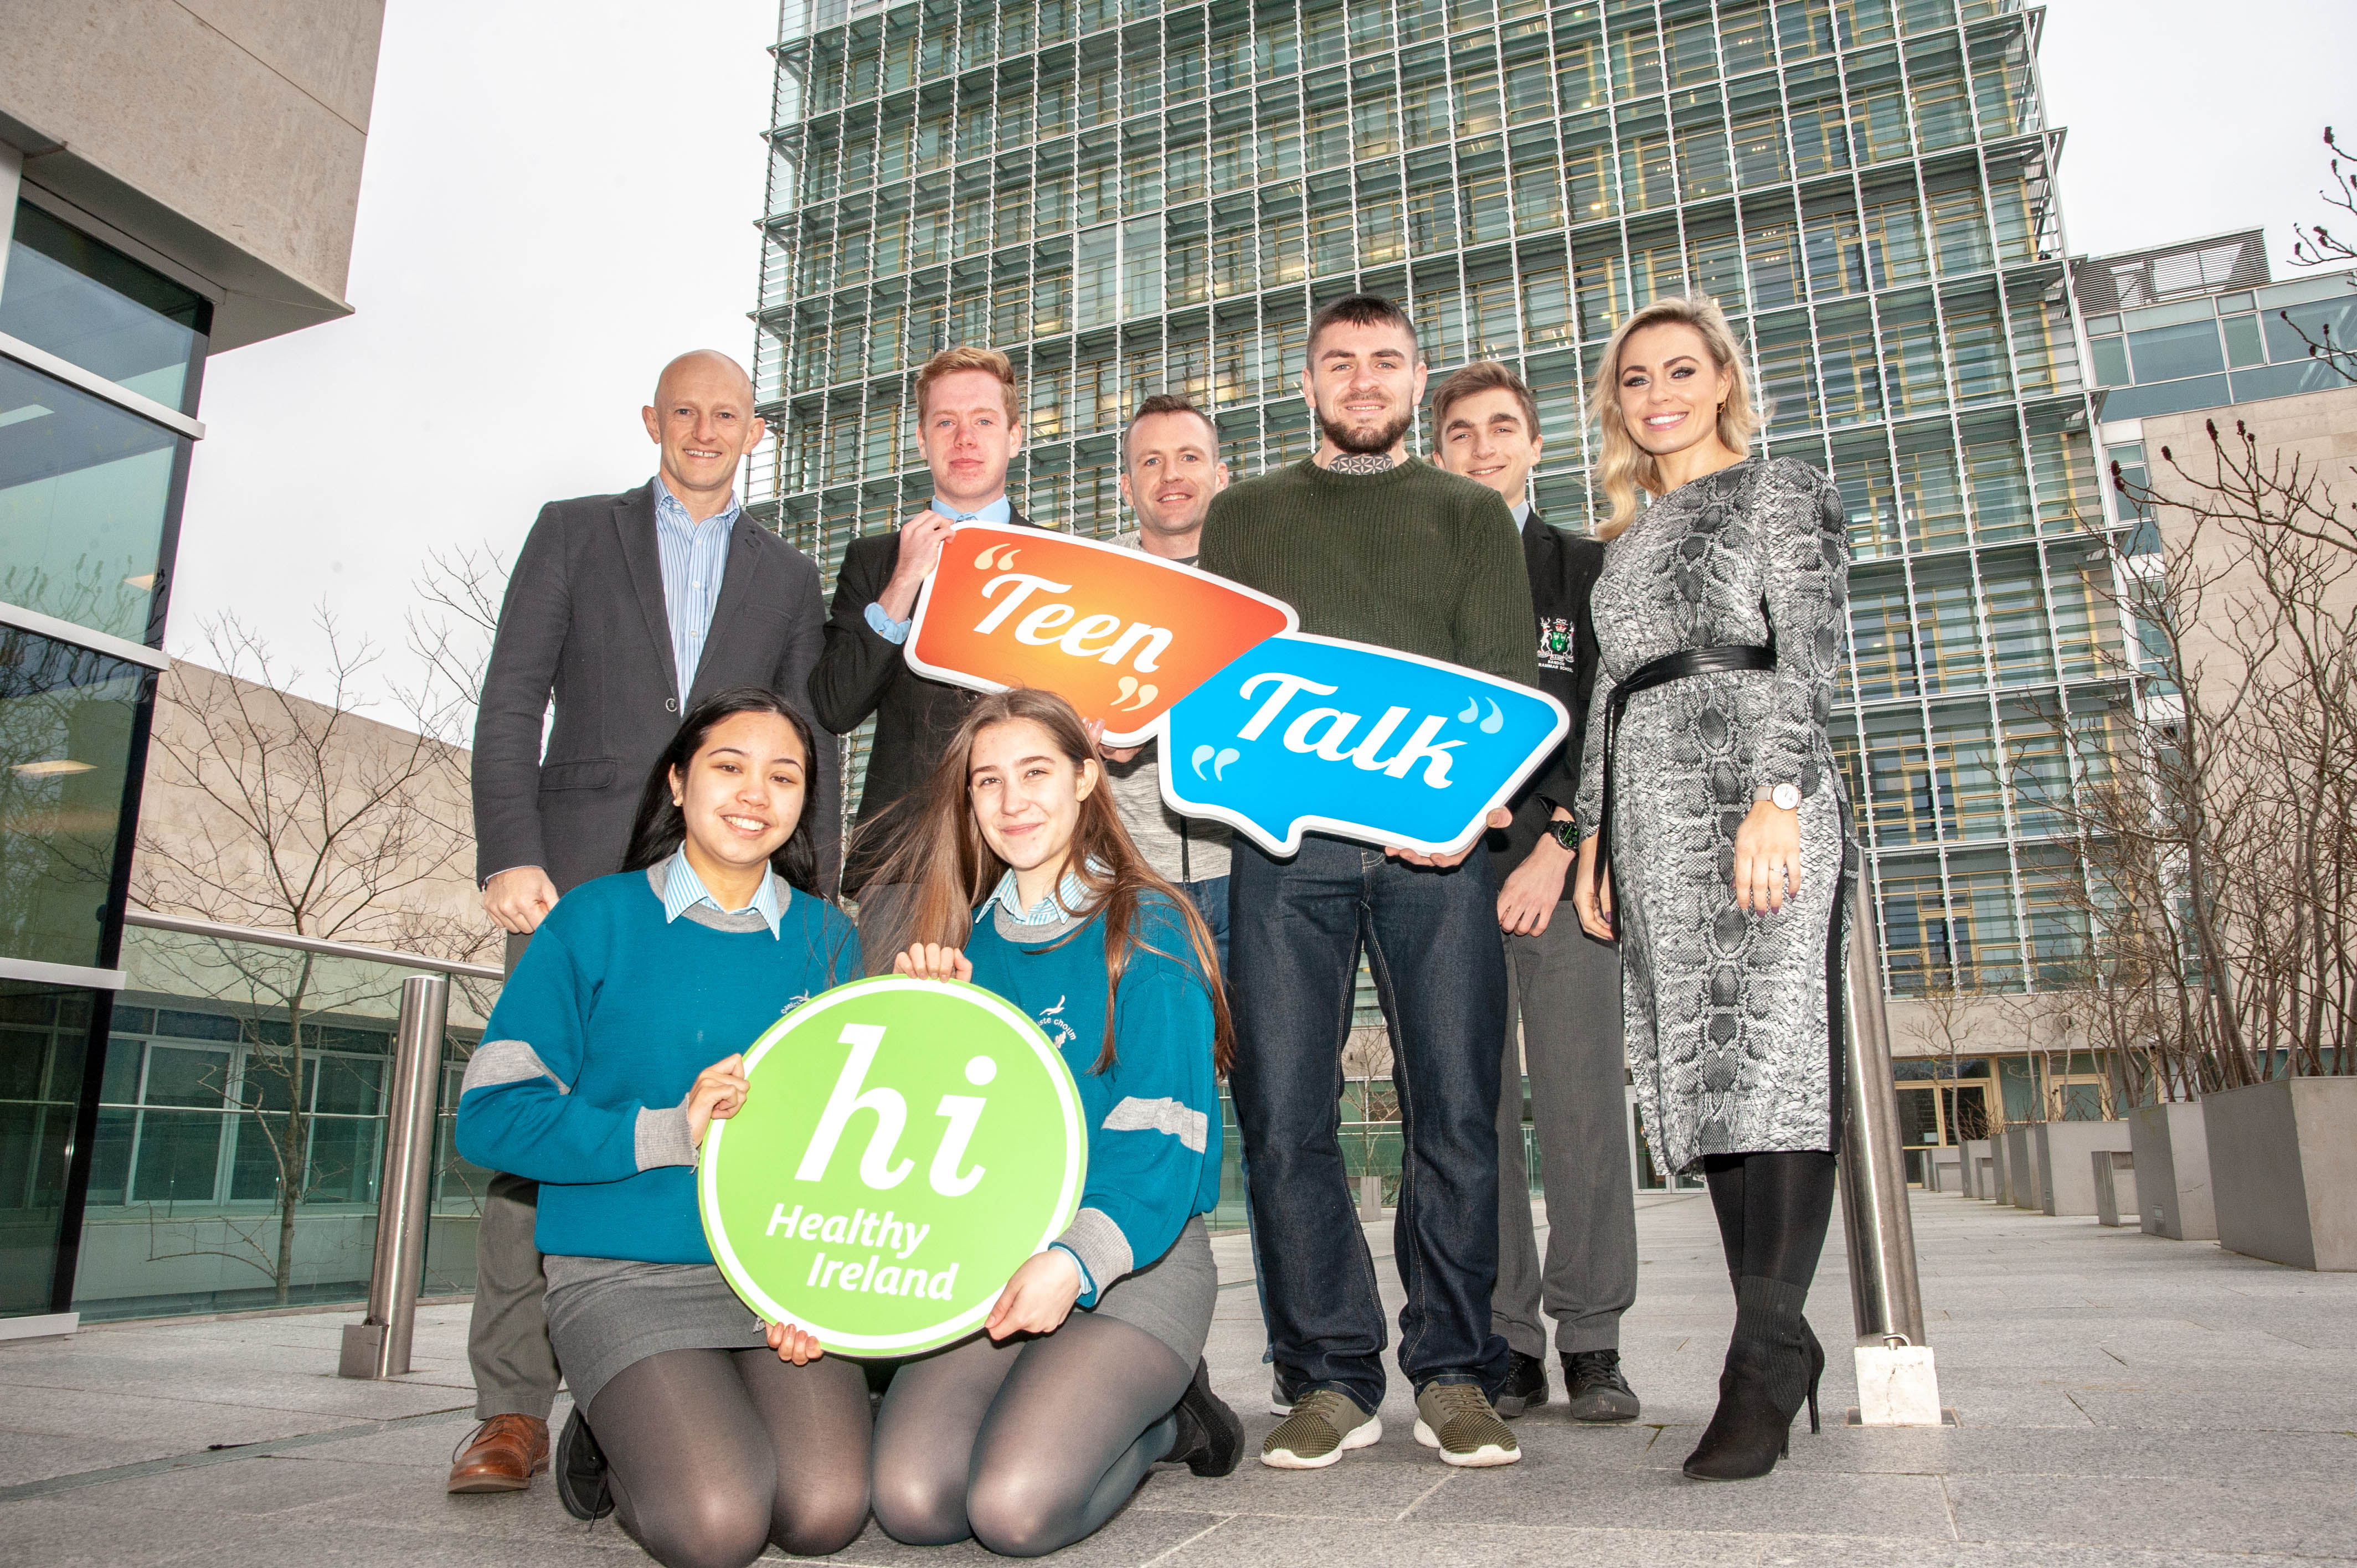 Cork County Council Announces Extension of Healthy Ireland Initiatives